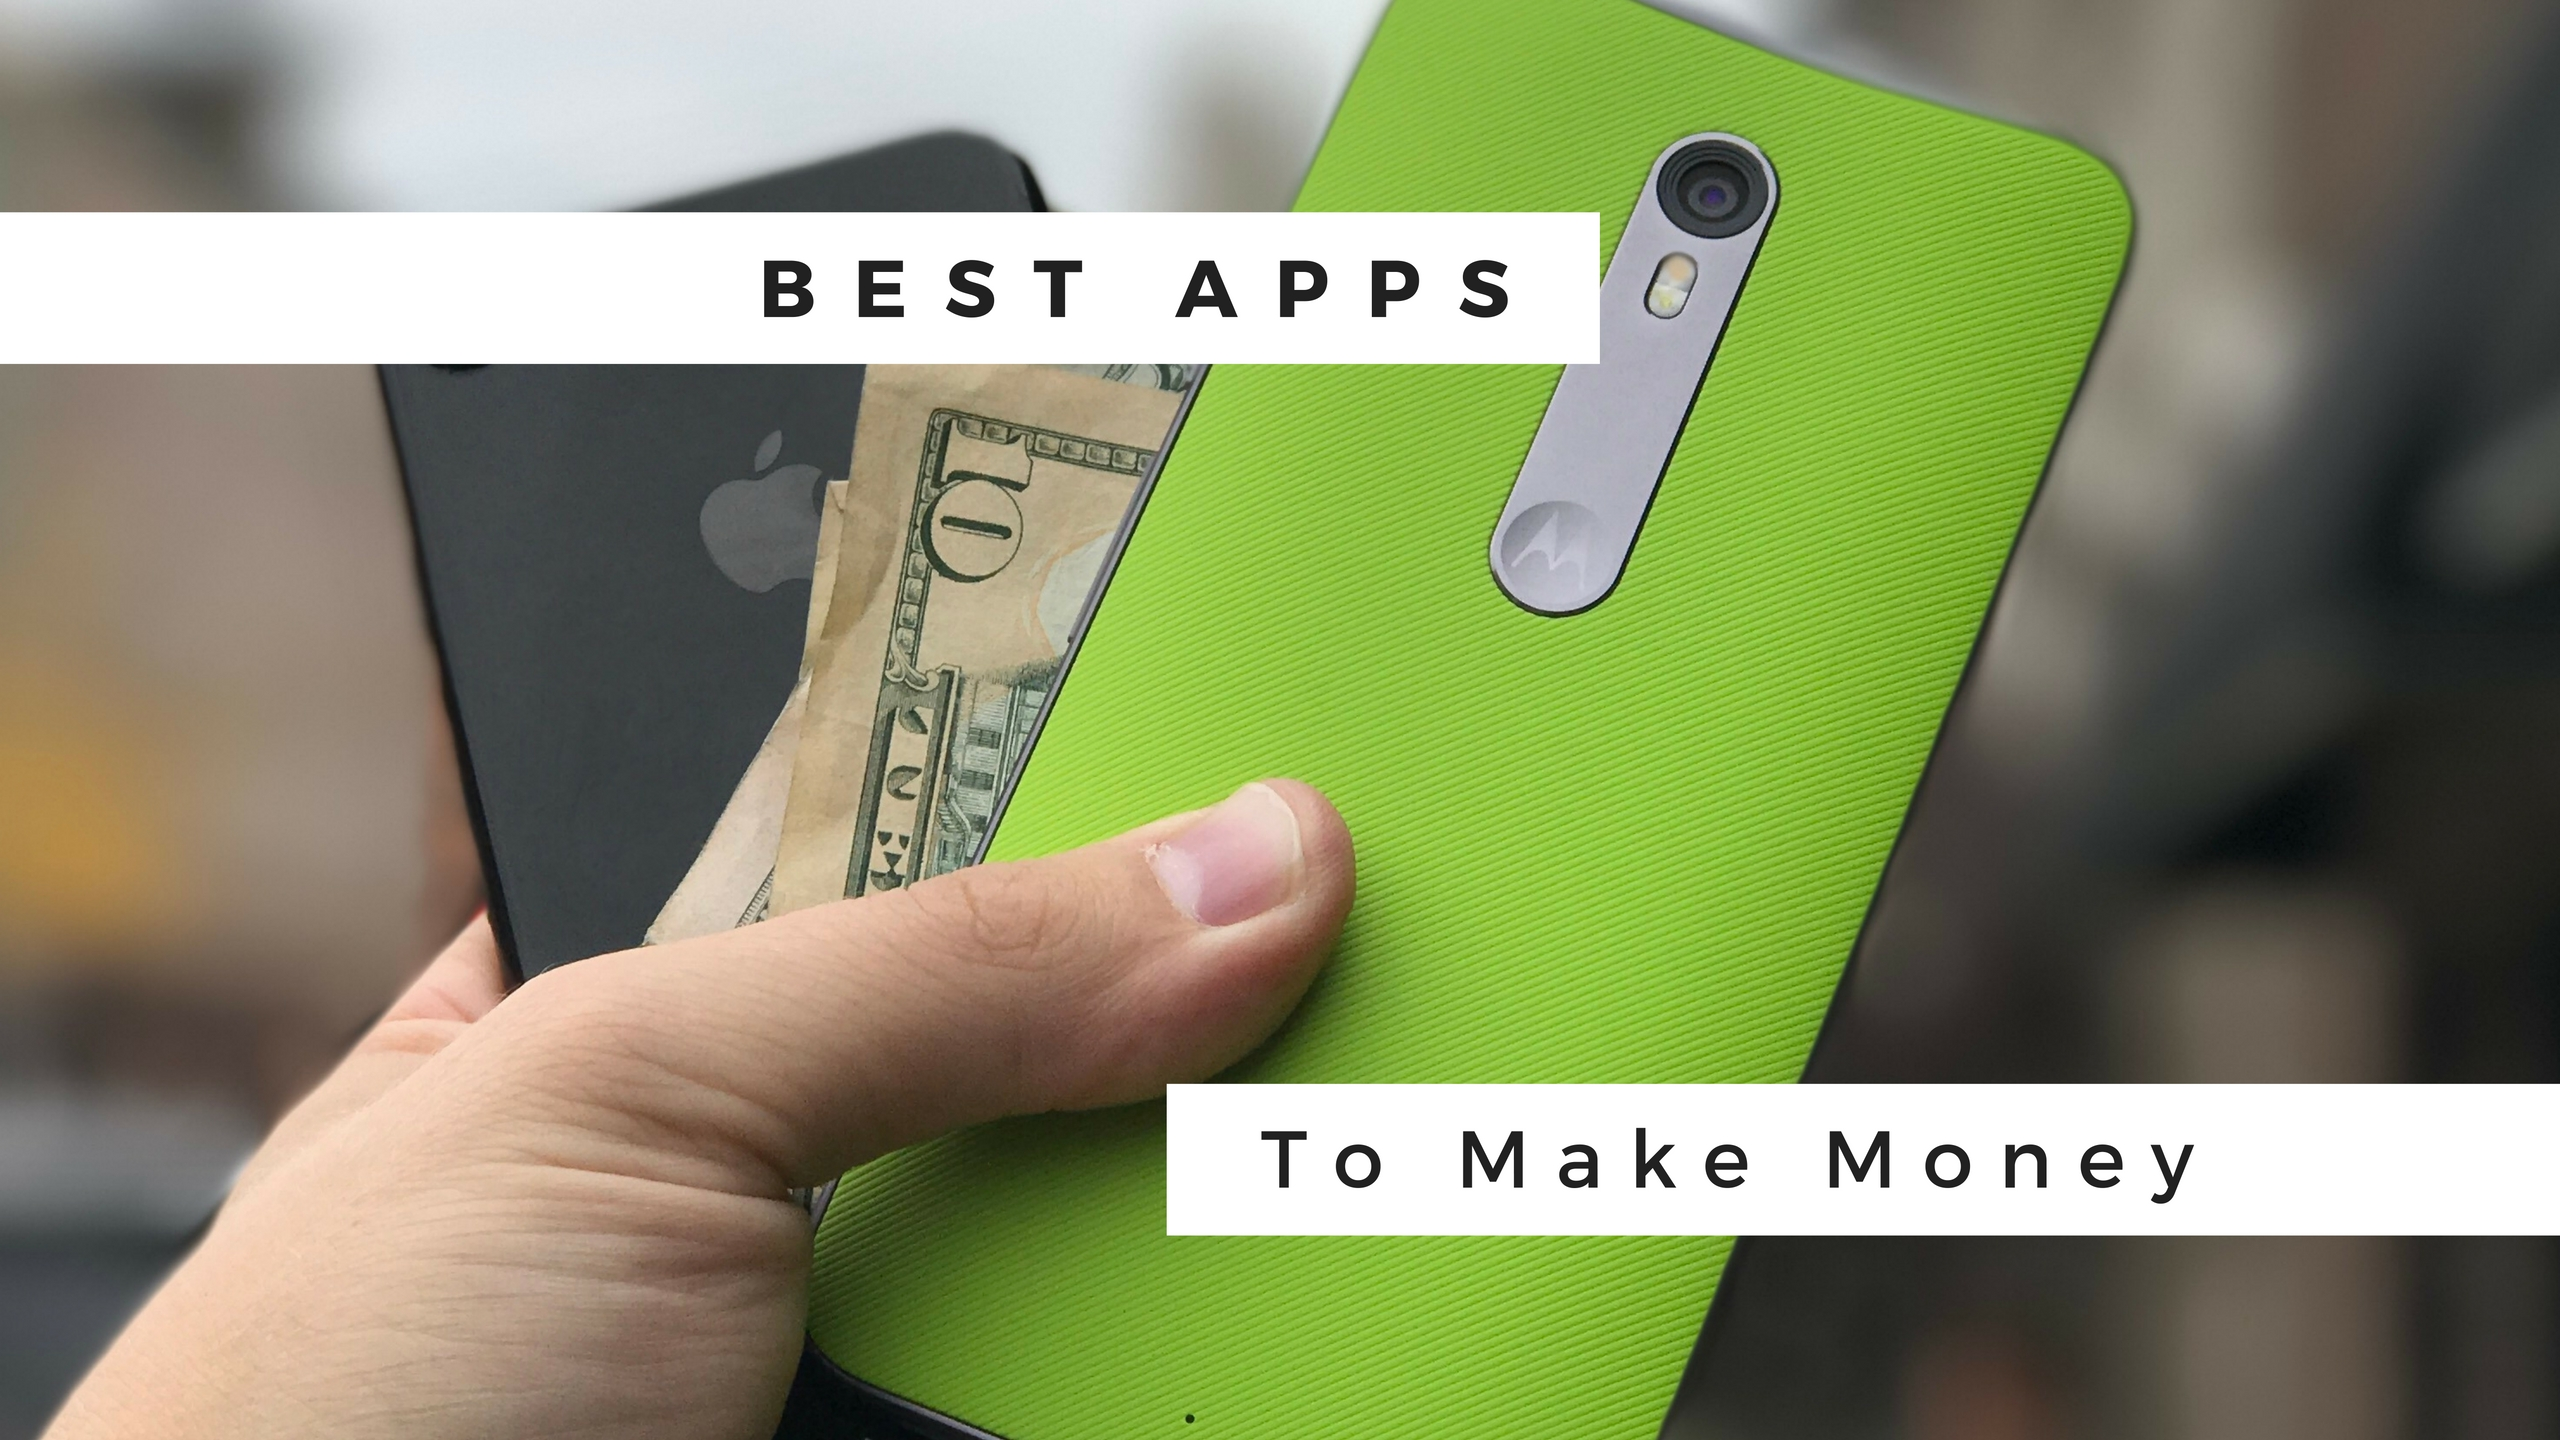 19 Best Apps to Make Money in 2019